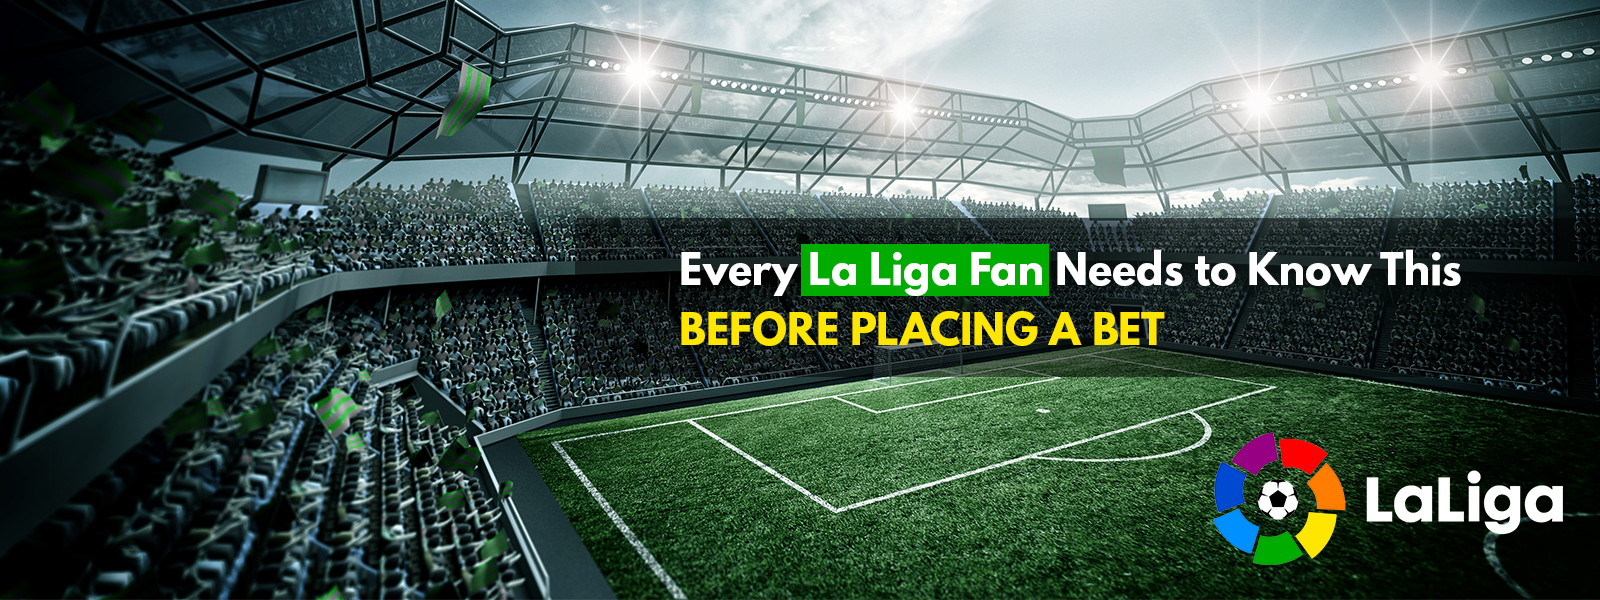 Every La Liga Fan Needs to Know This before Placing a Bet